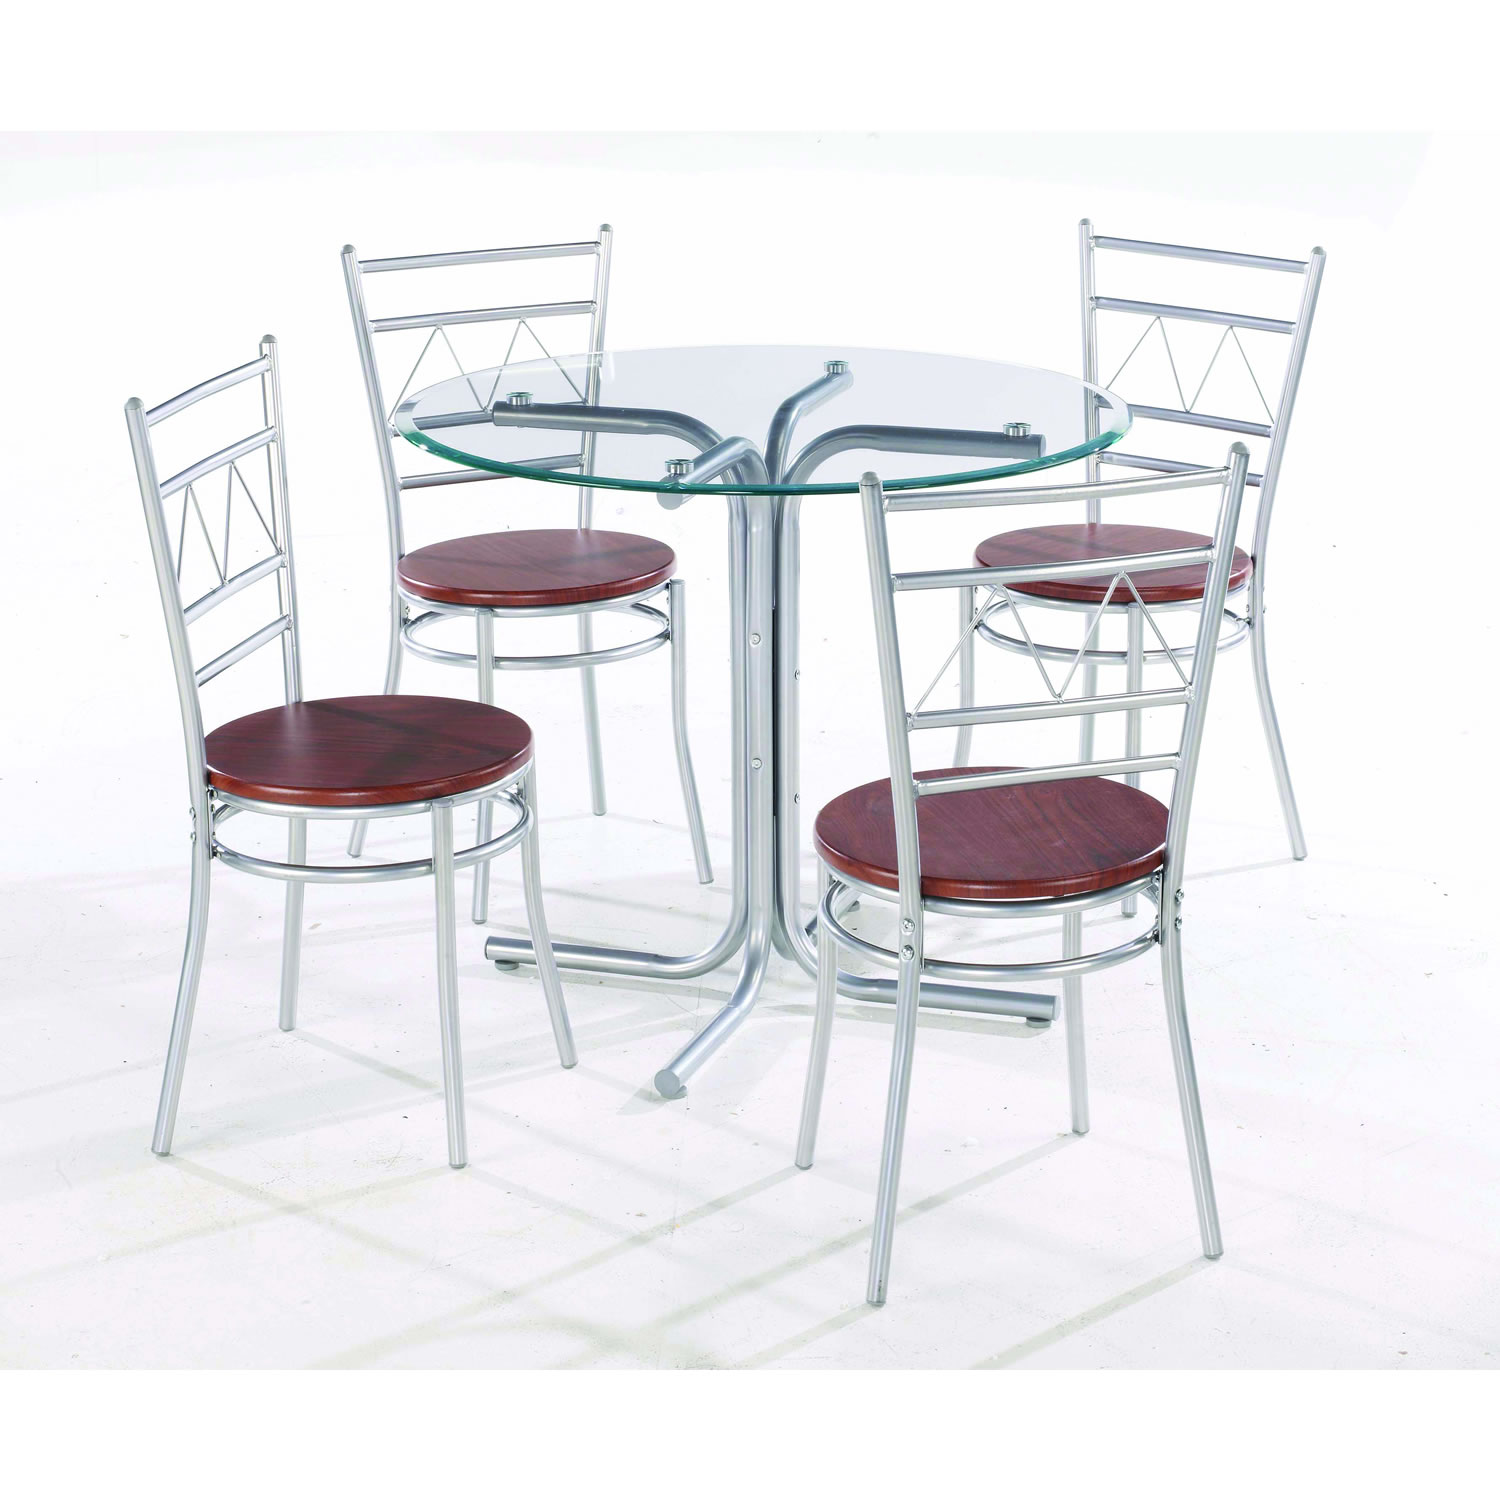 Steel Chair Soft Seat Dinnig Modern Glass Table